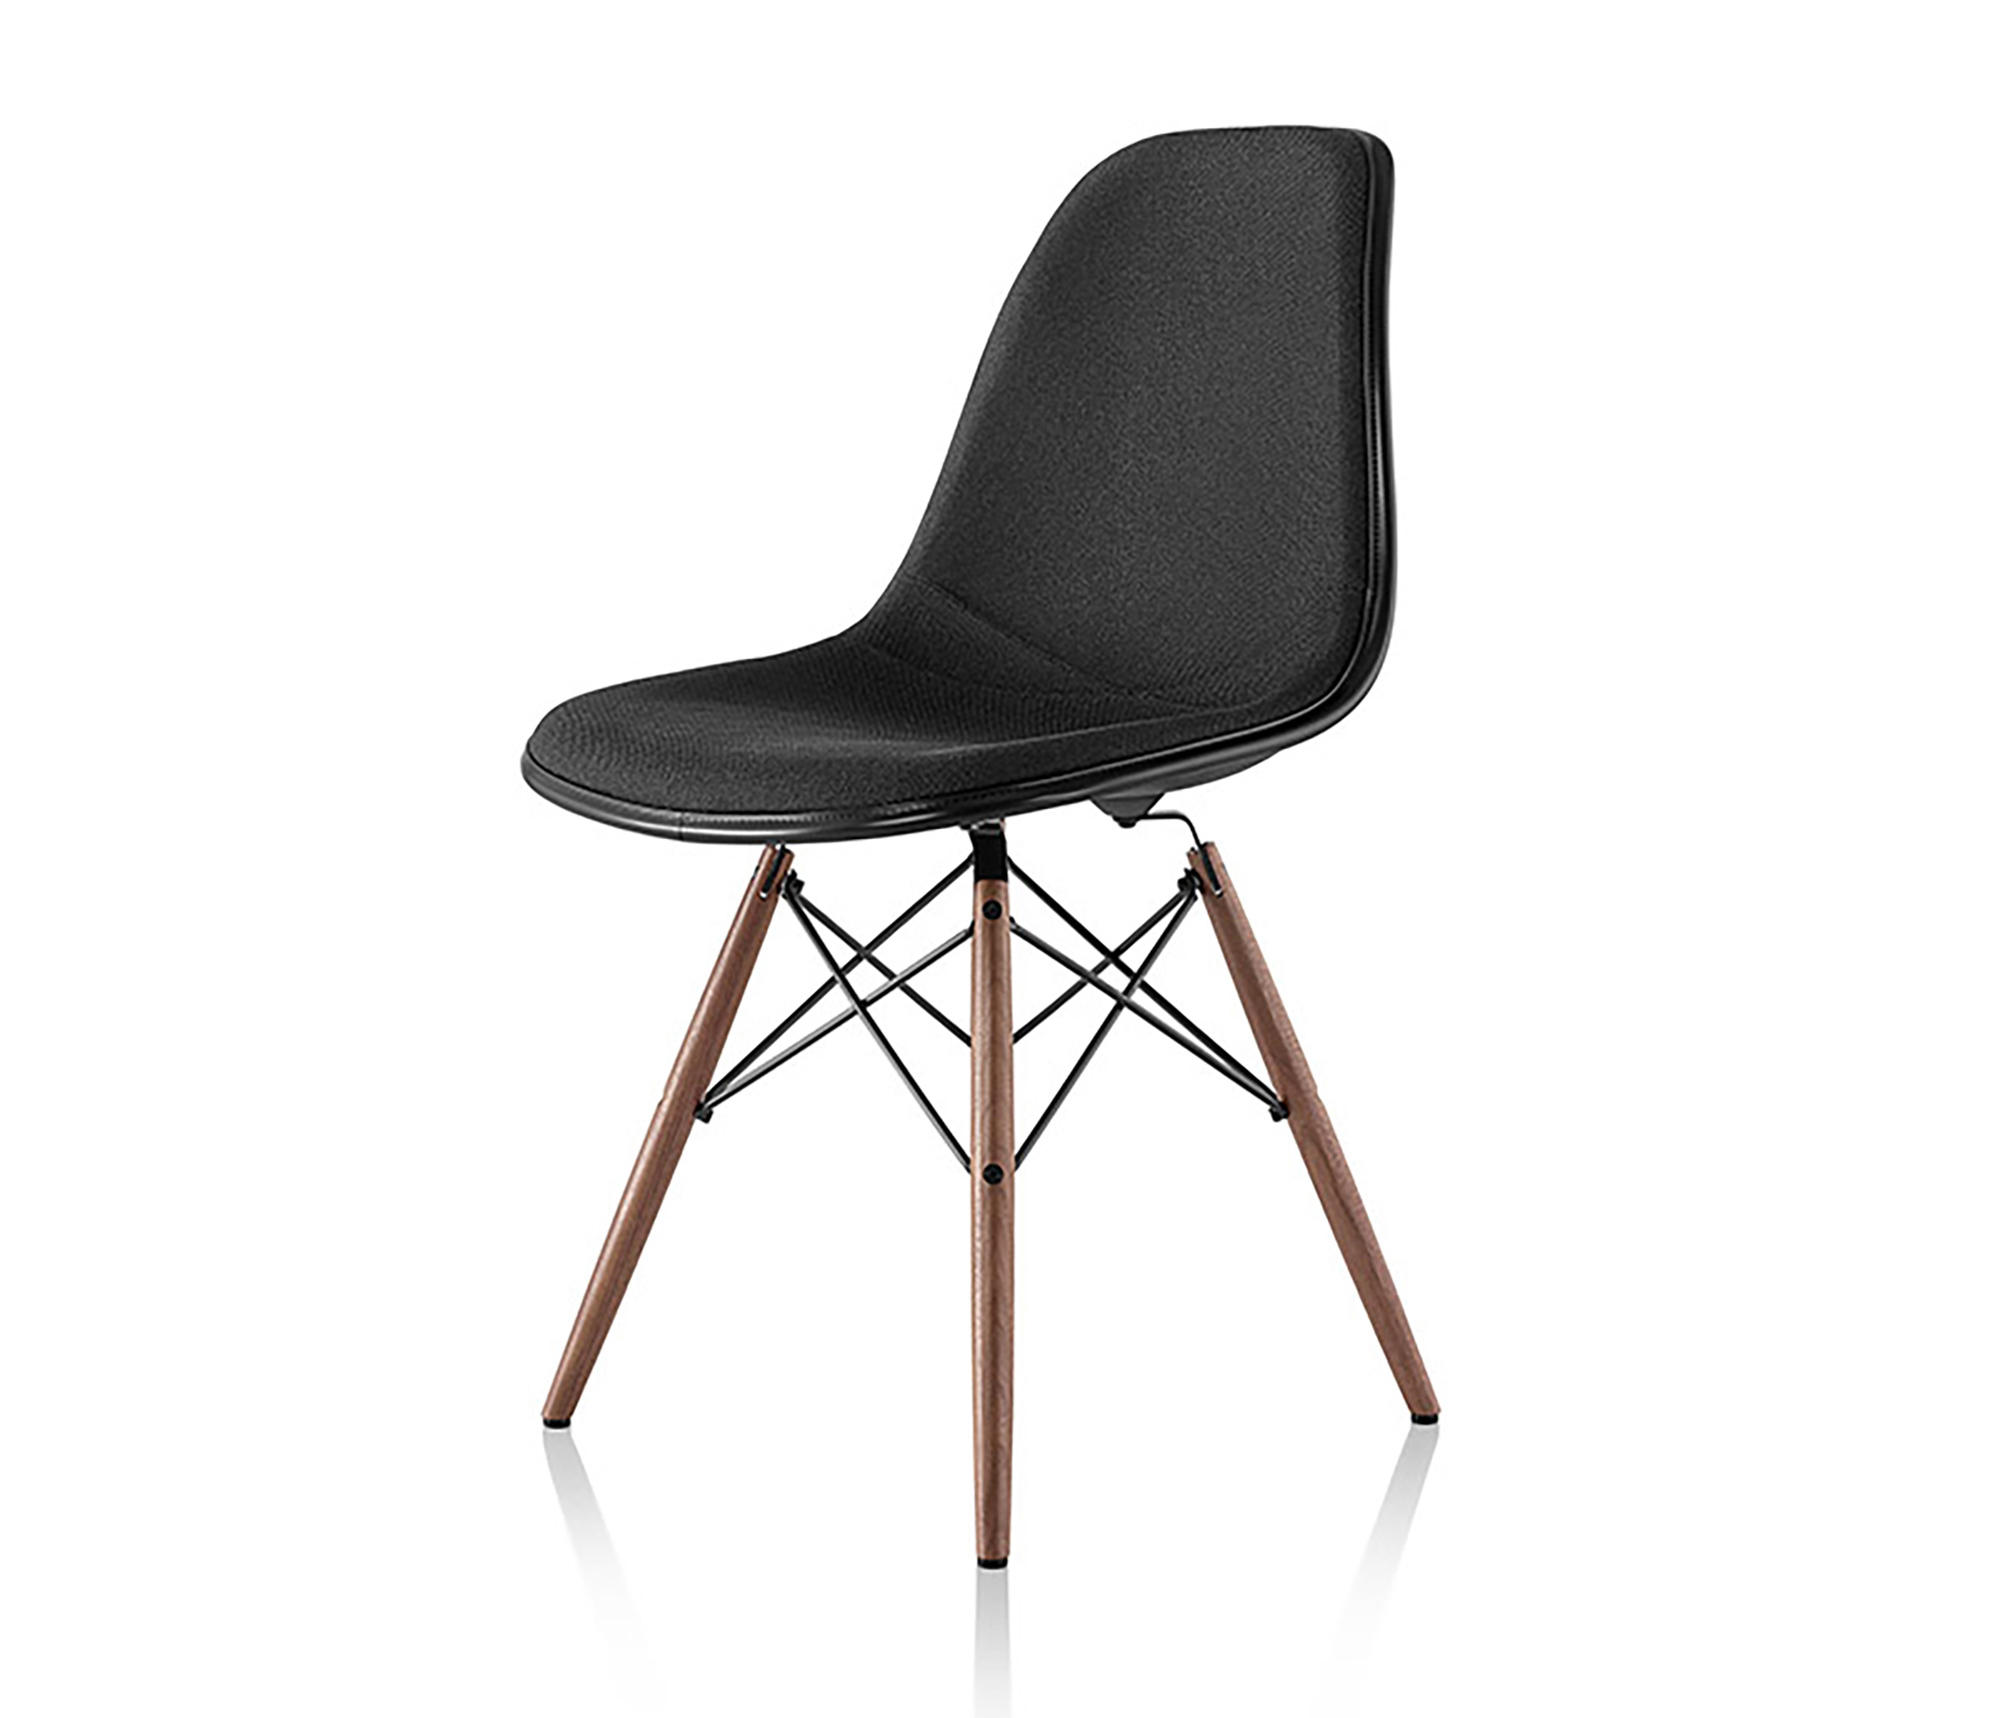 Eames molded plastic side chair chairs from herman for Eames side chair nachbau